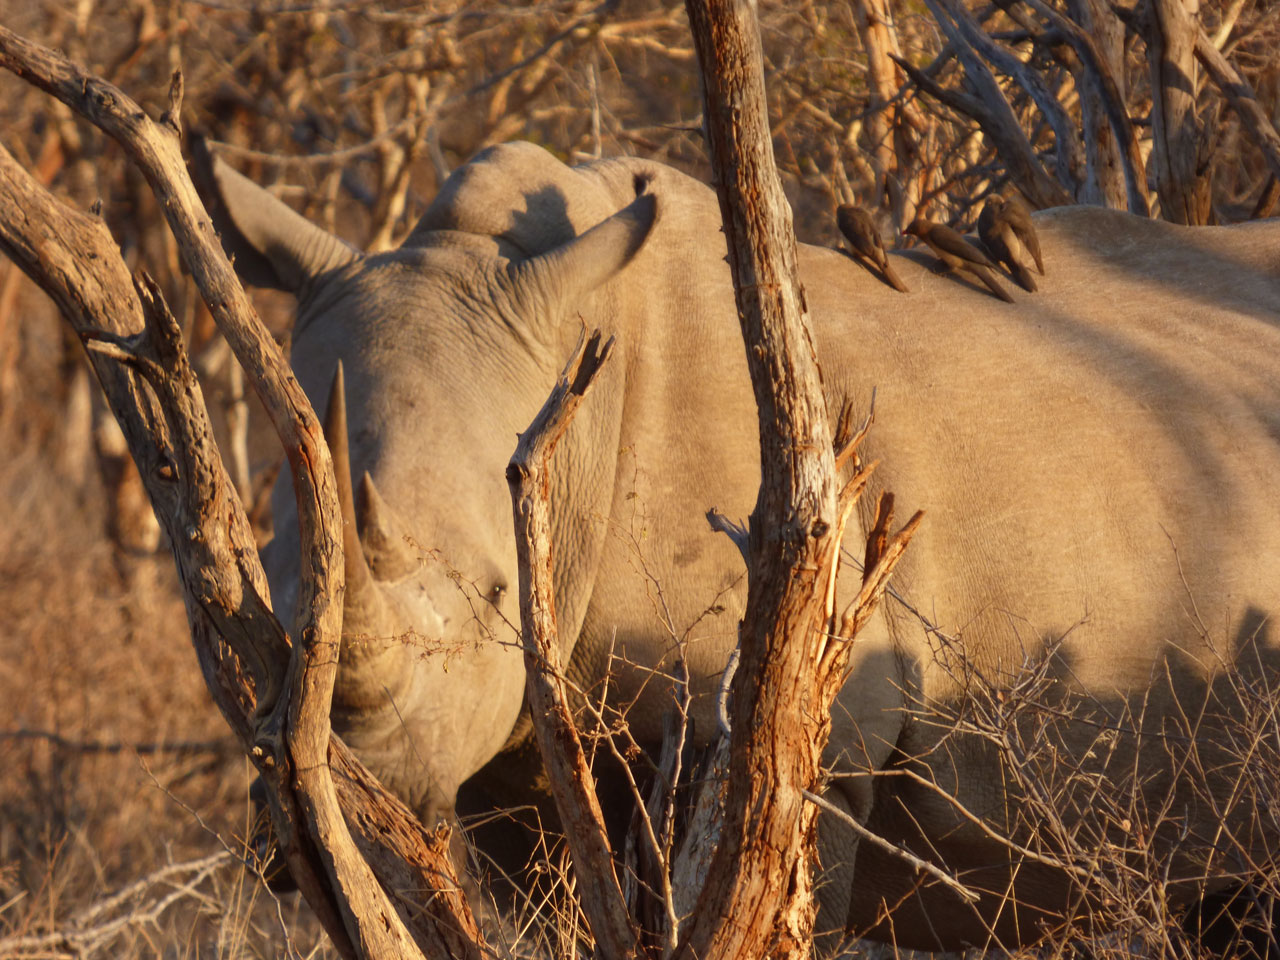 White rhino in Madikwe Game Reserve, South Africa